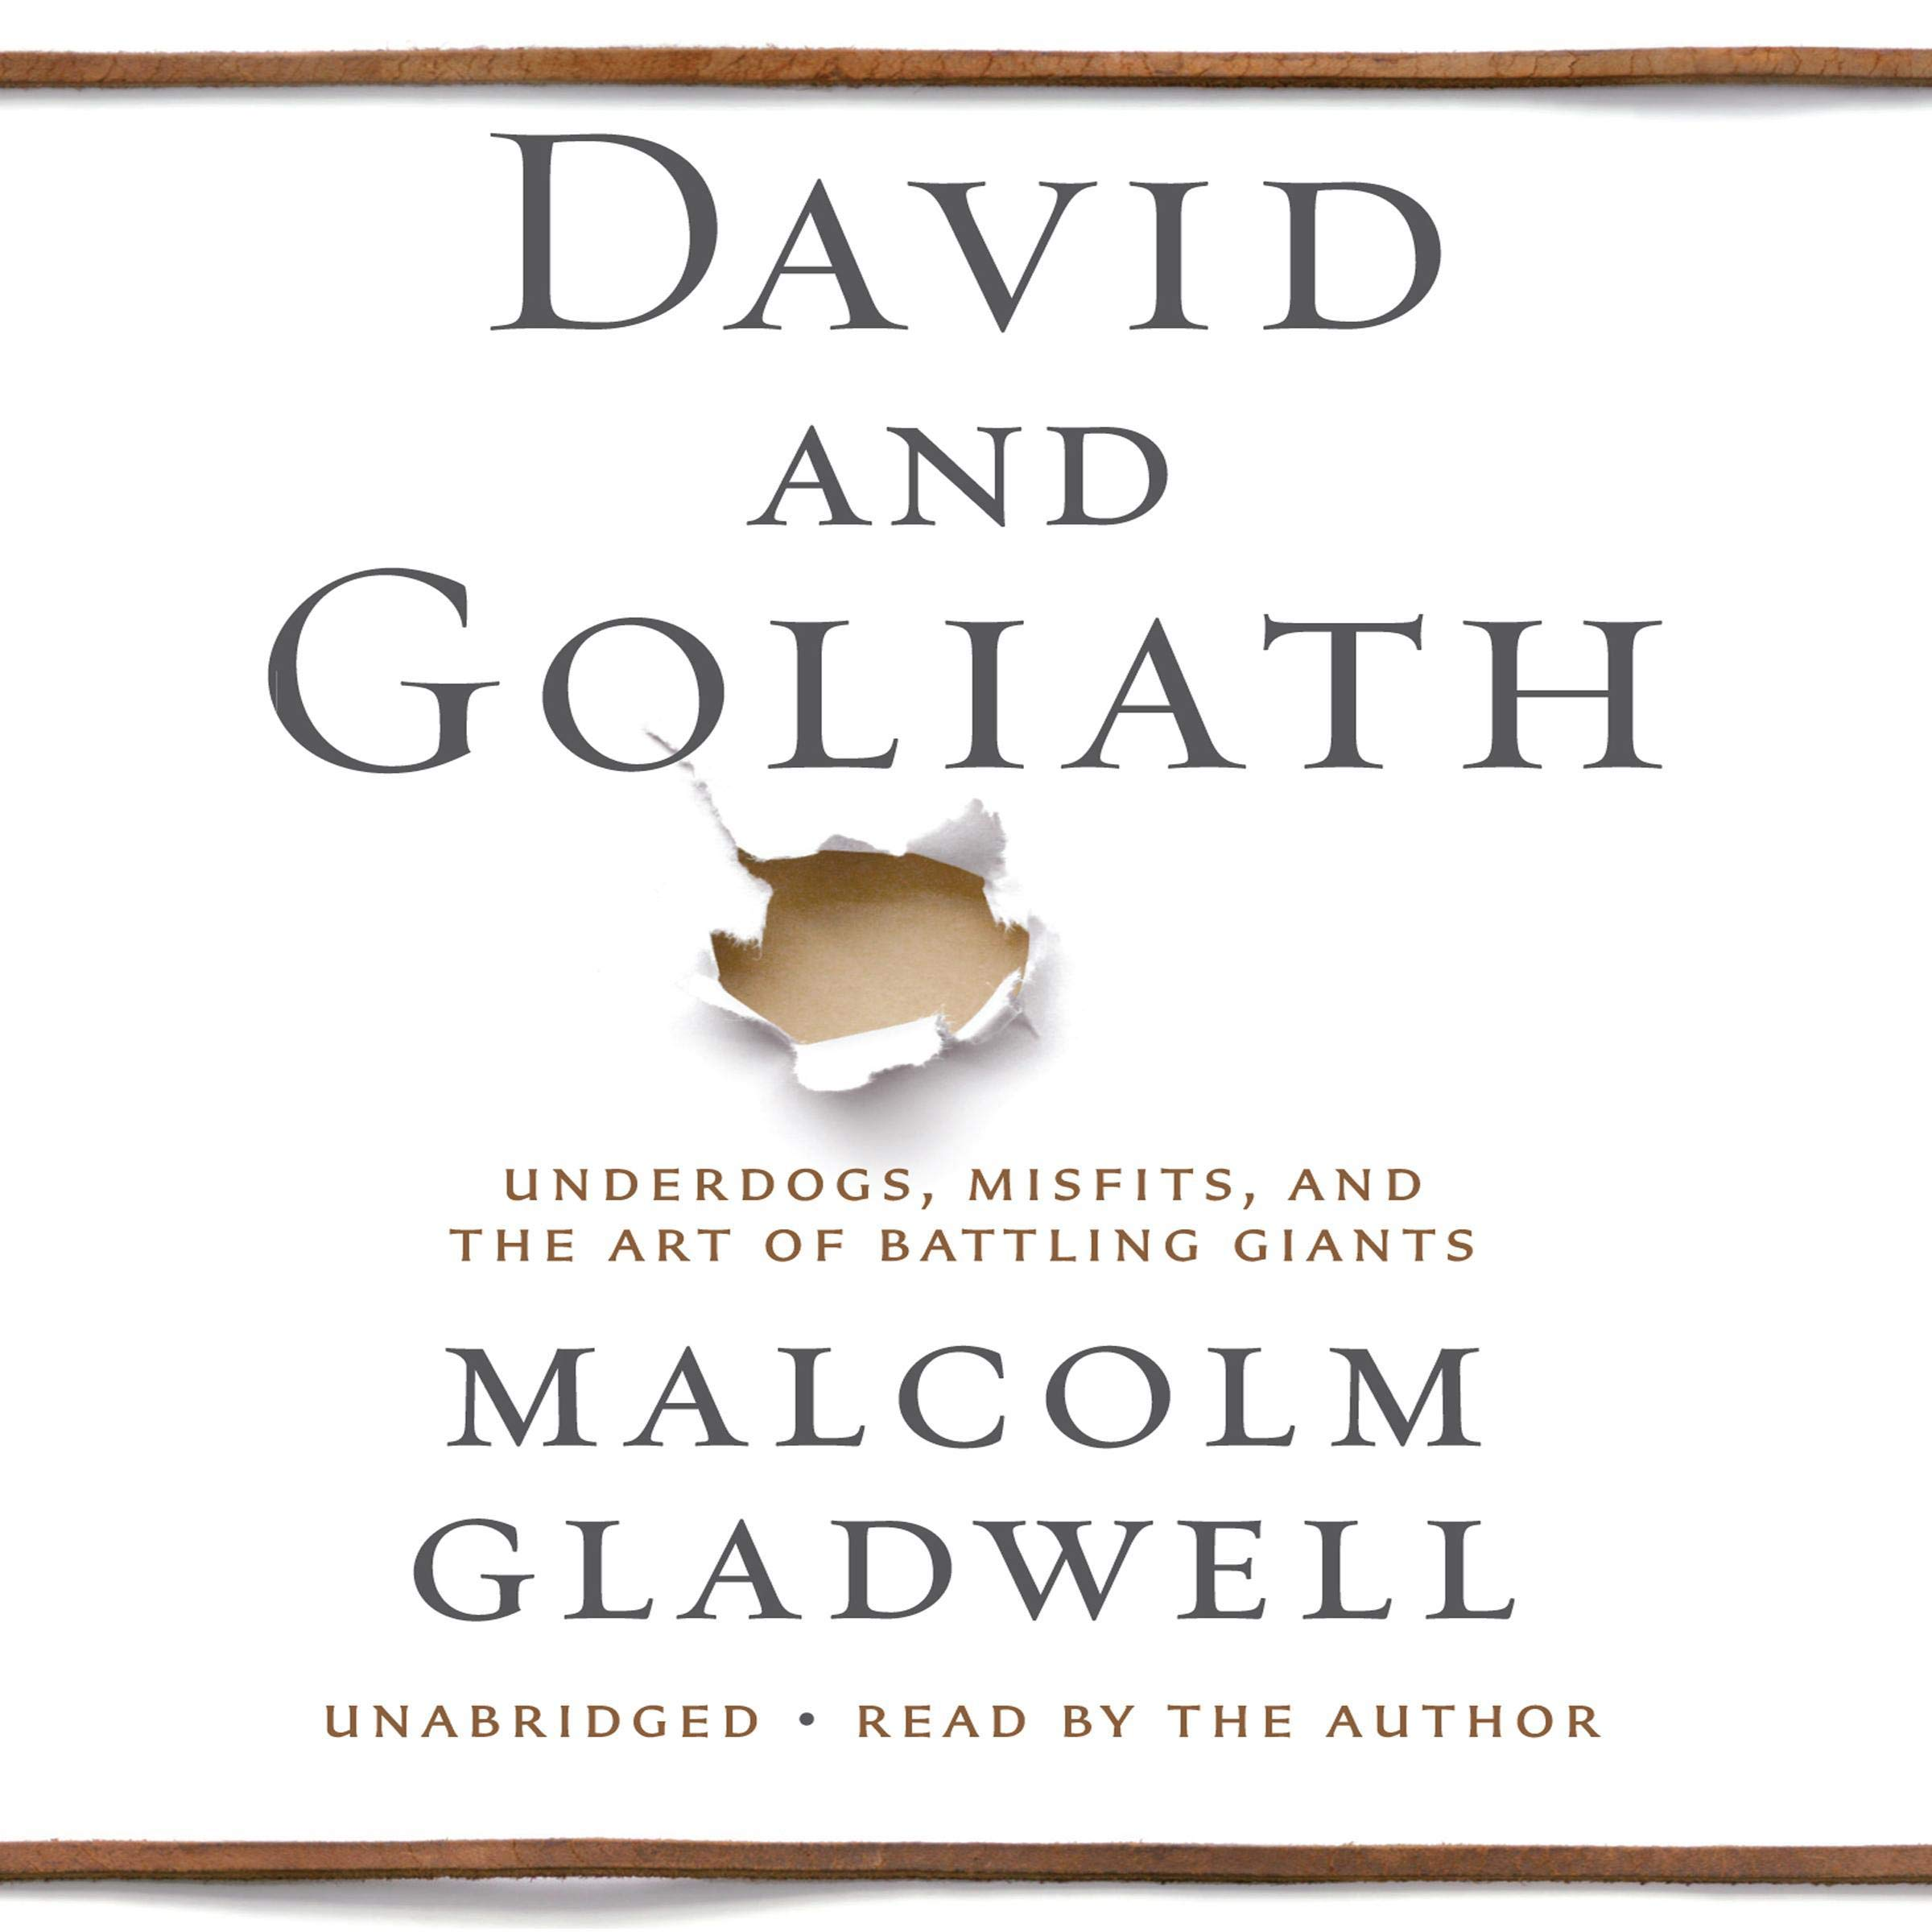 David and Goliath (Underdogs, Misfits, and the Art of Battling Giants)